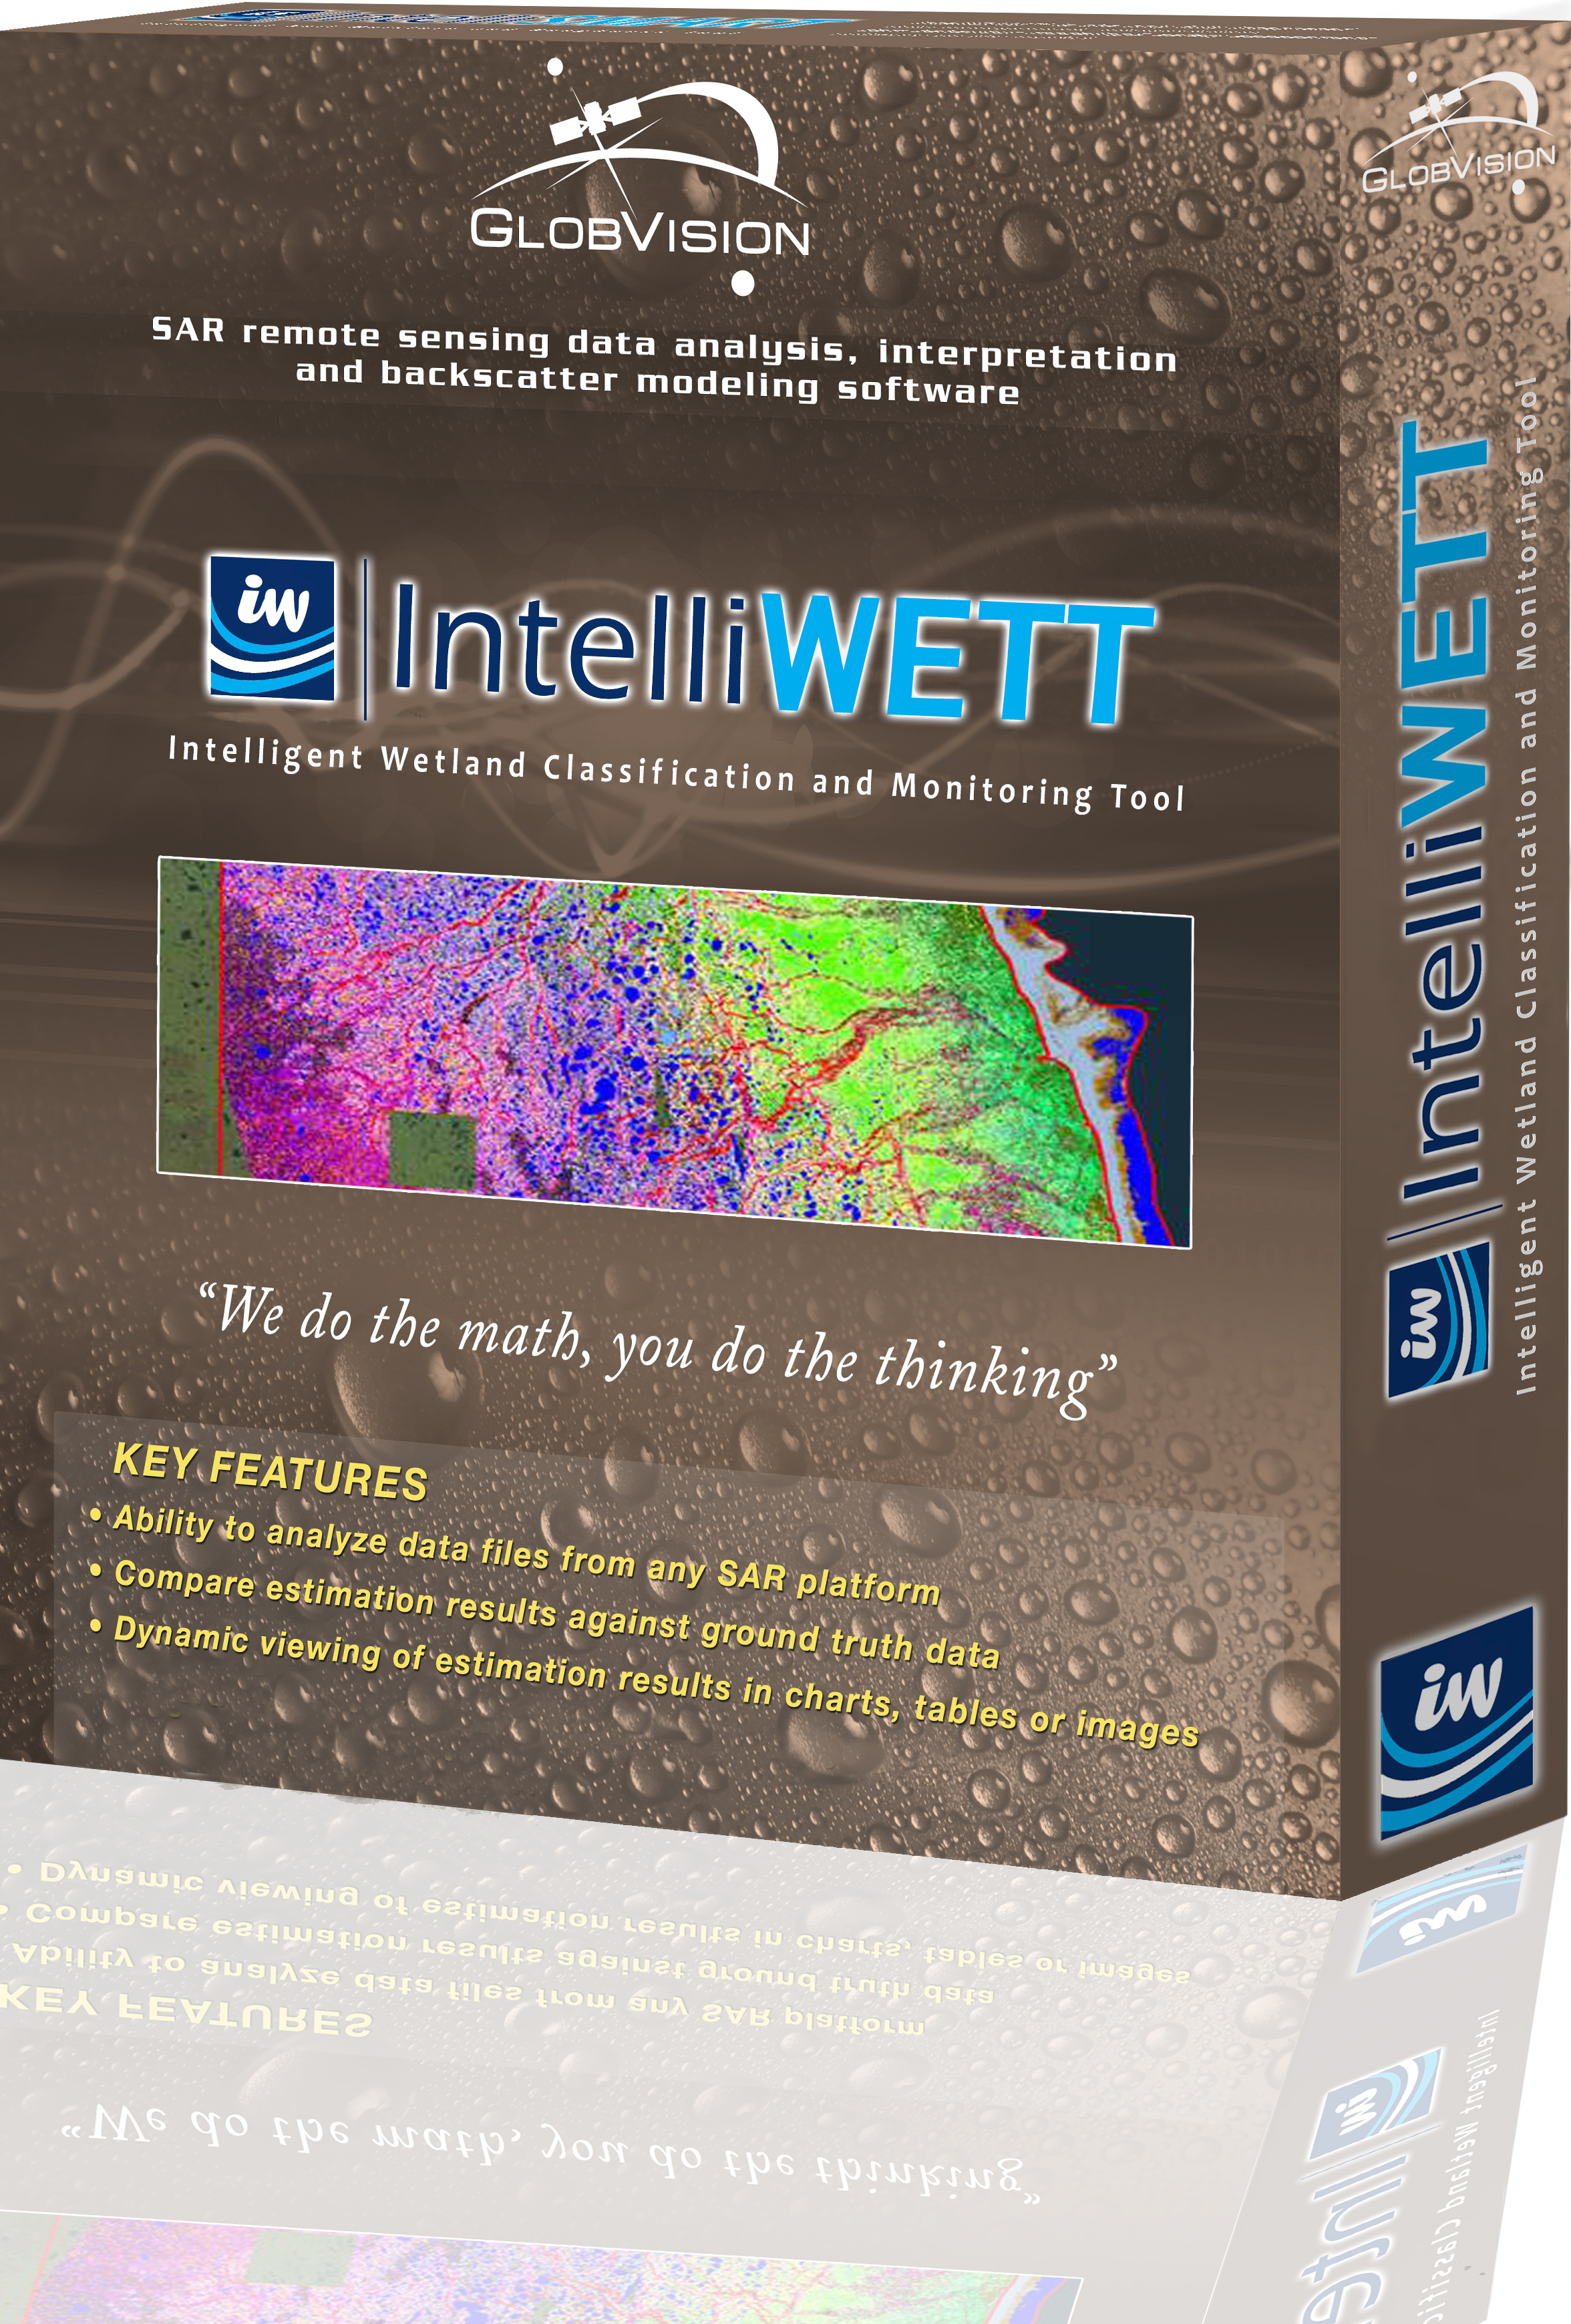 intelliWETT_box_EDIT2_